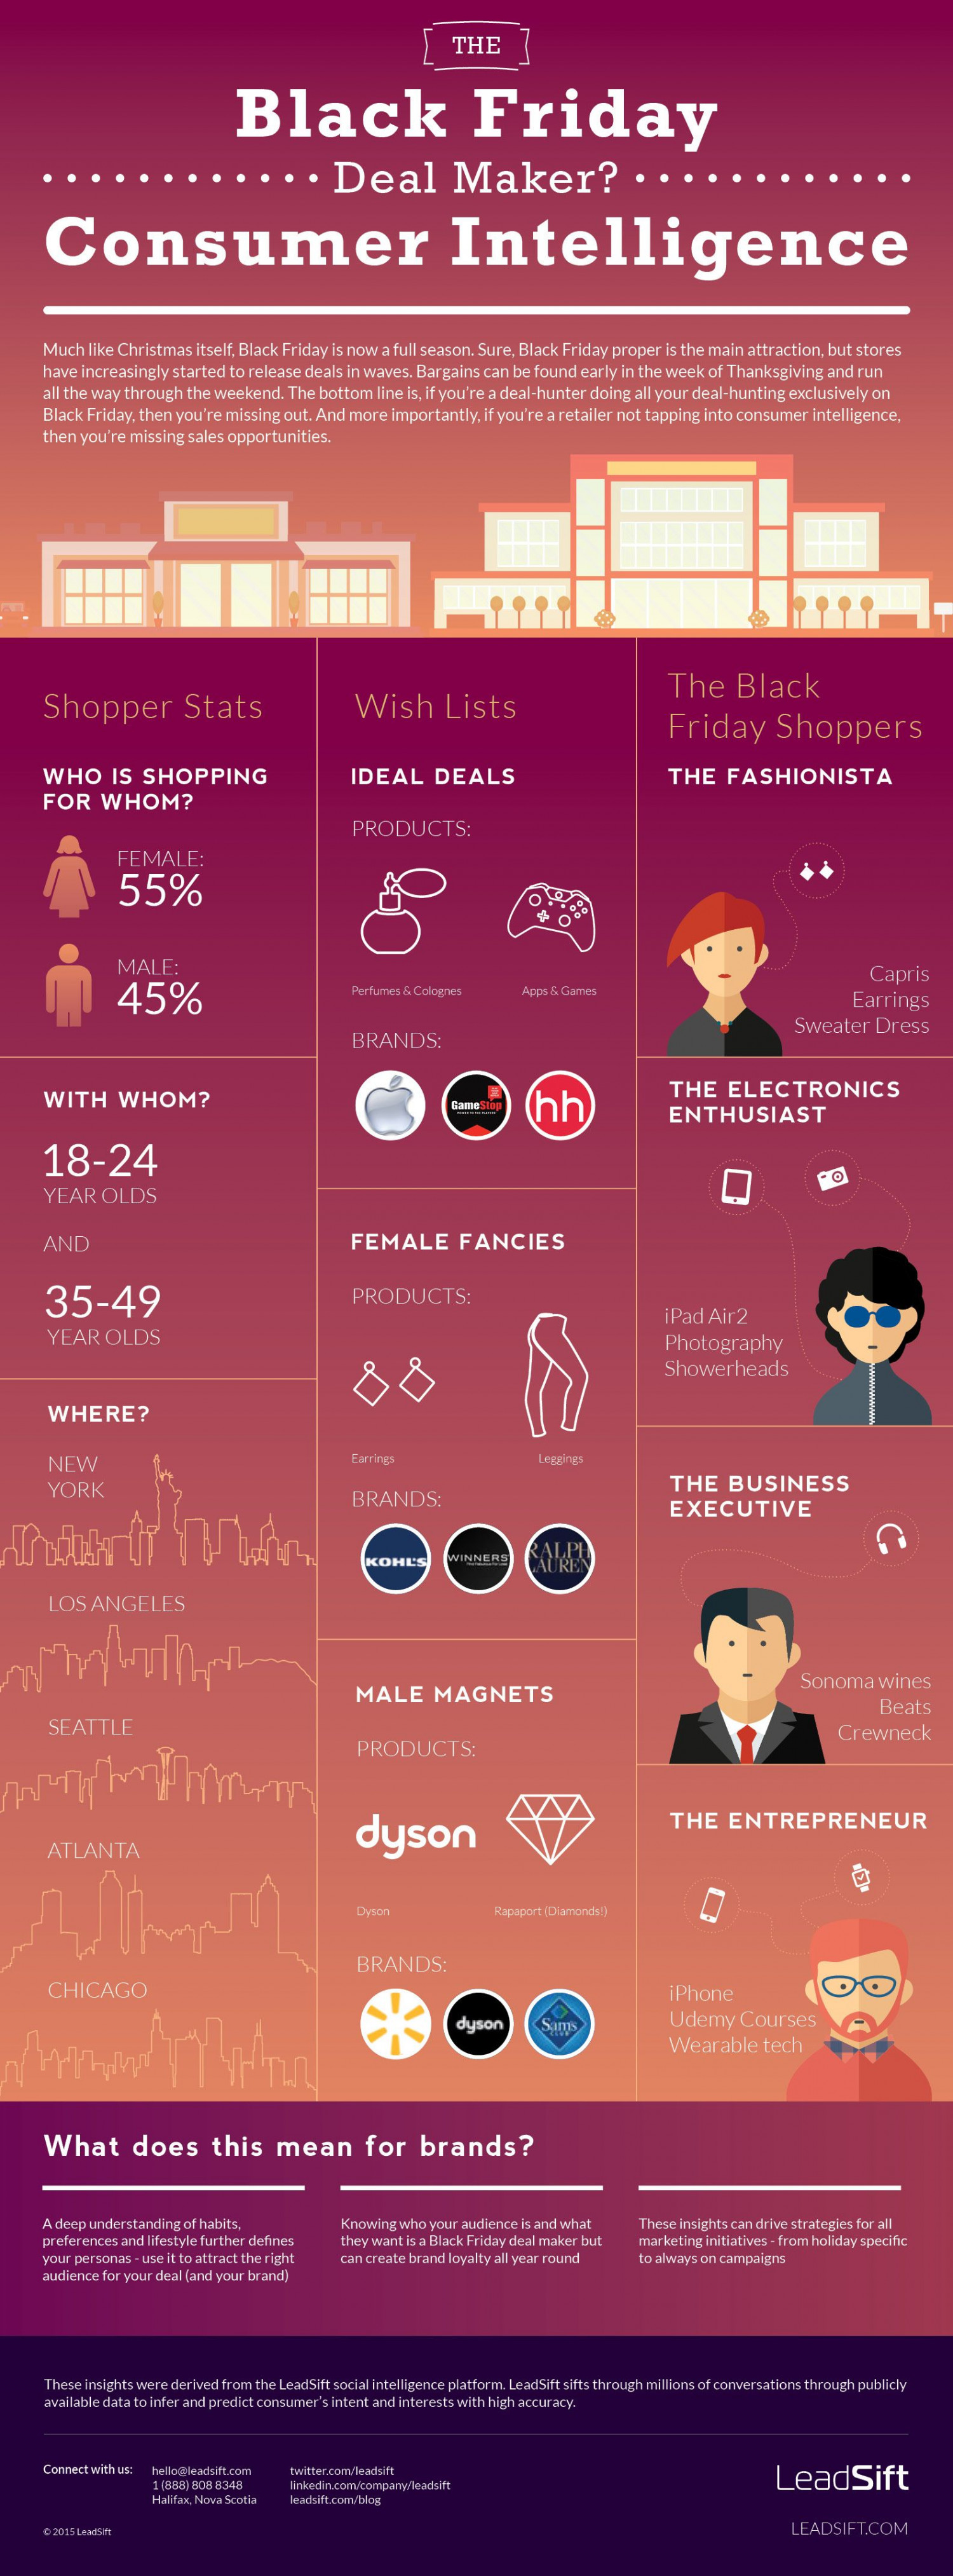 The Black Friday Deal Maker? Customer Intelligence Infographic